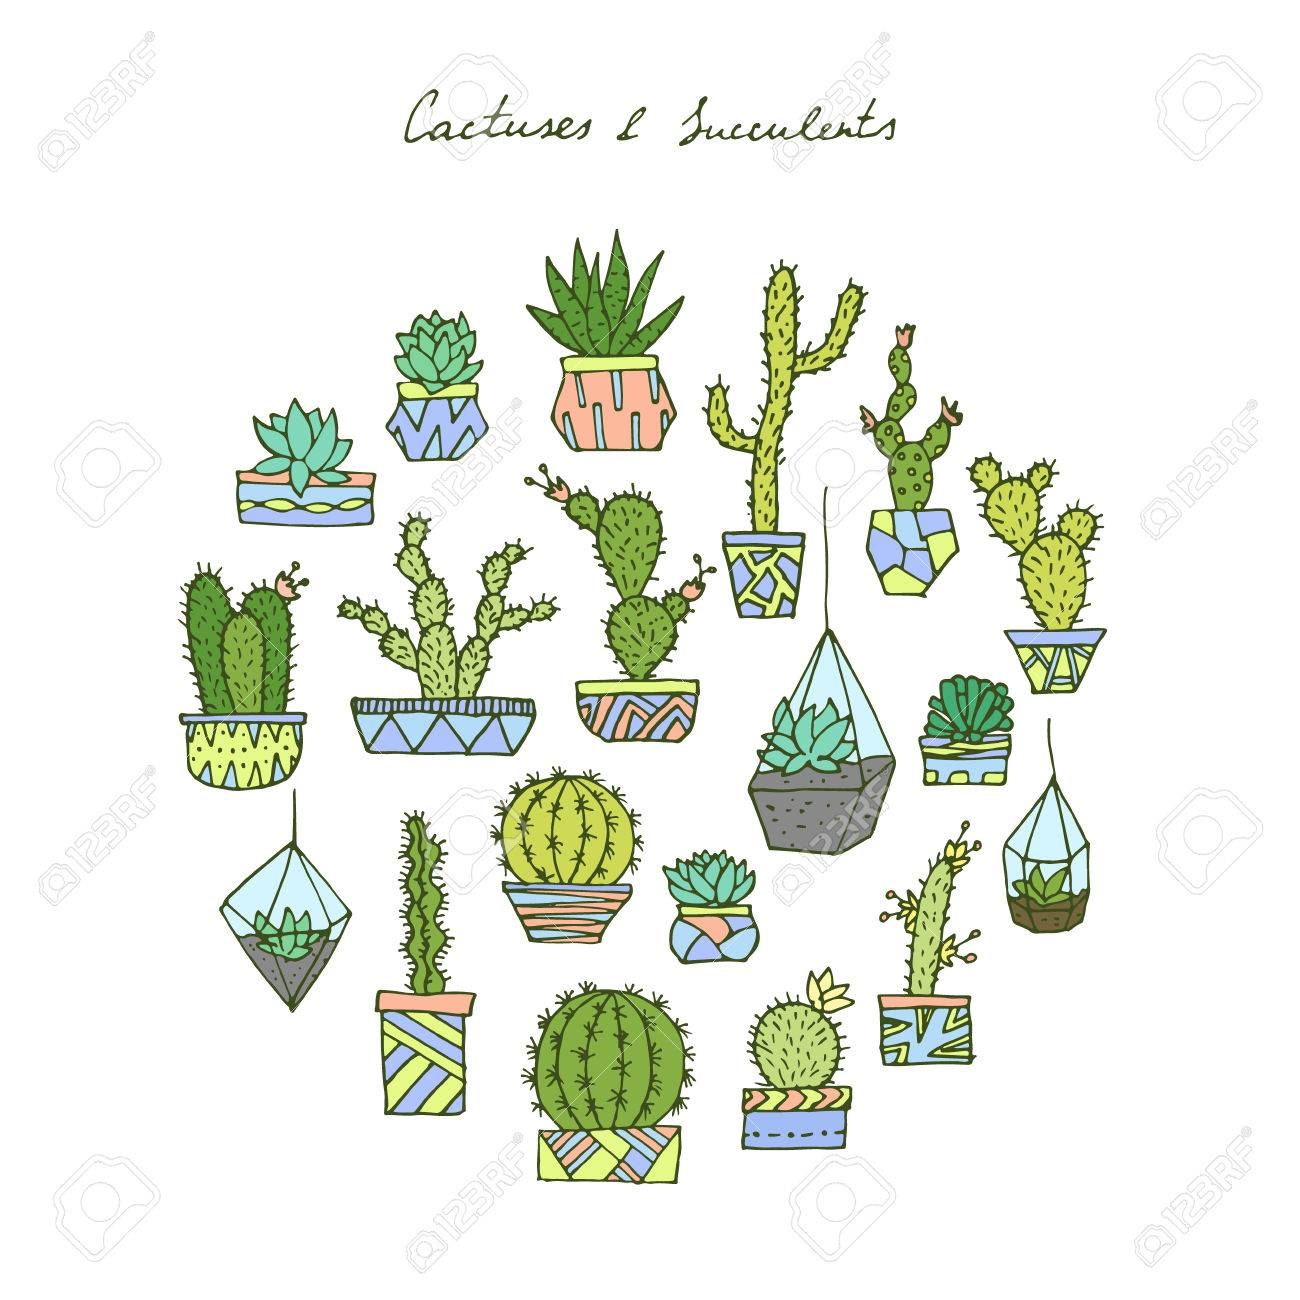 Vector Hand Drawn Cactuses And Succulents Royalty Free Cliparts Vectors And Stock Illustration Image 61952774